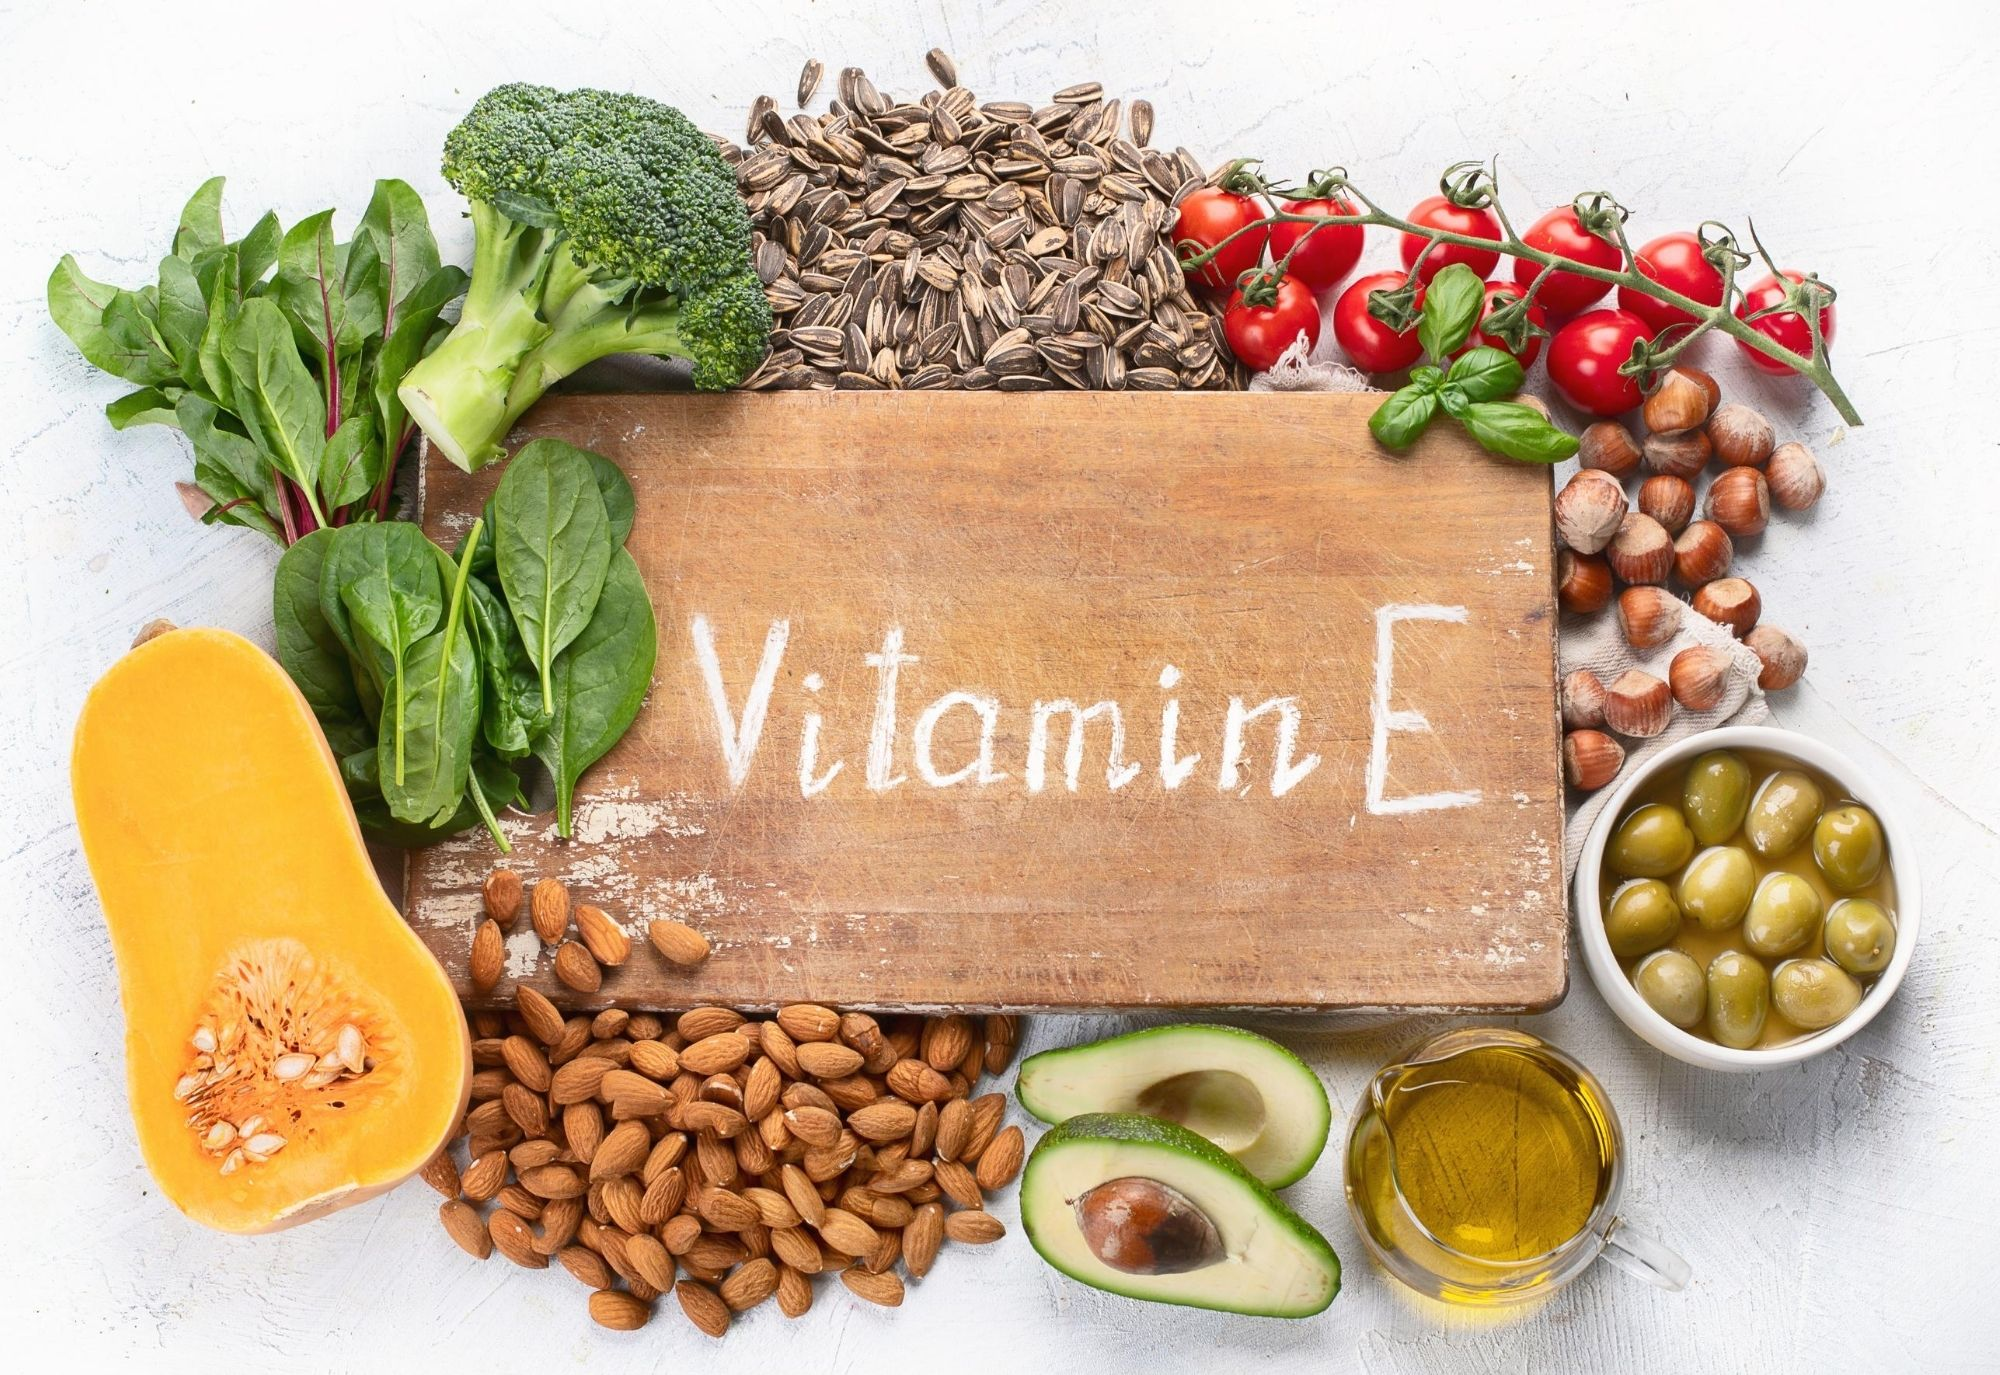 Vitamin E: What is tocopherol used for?